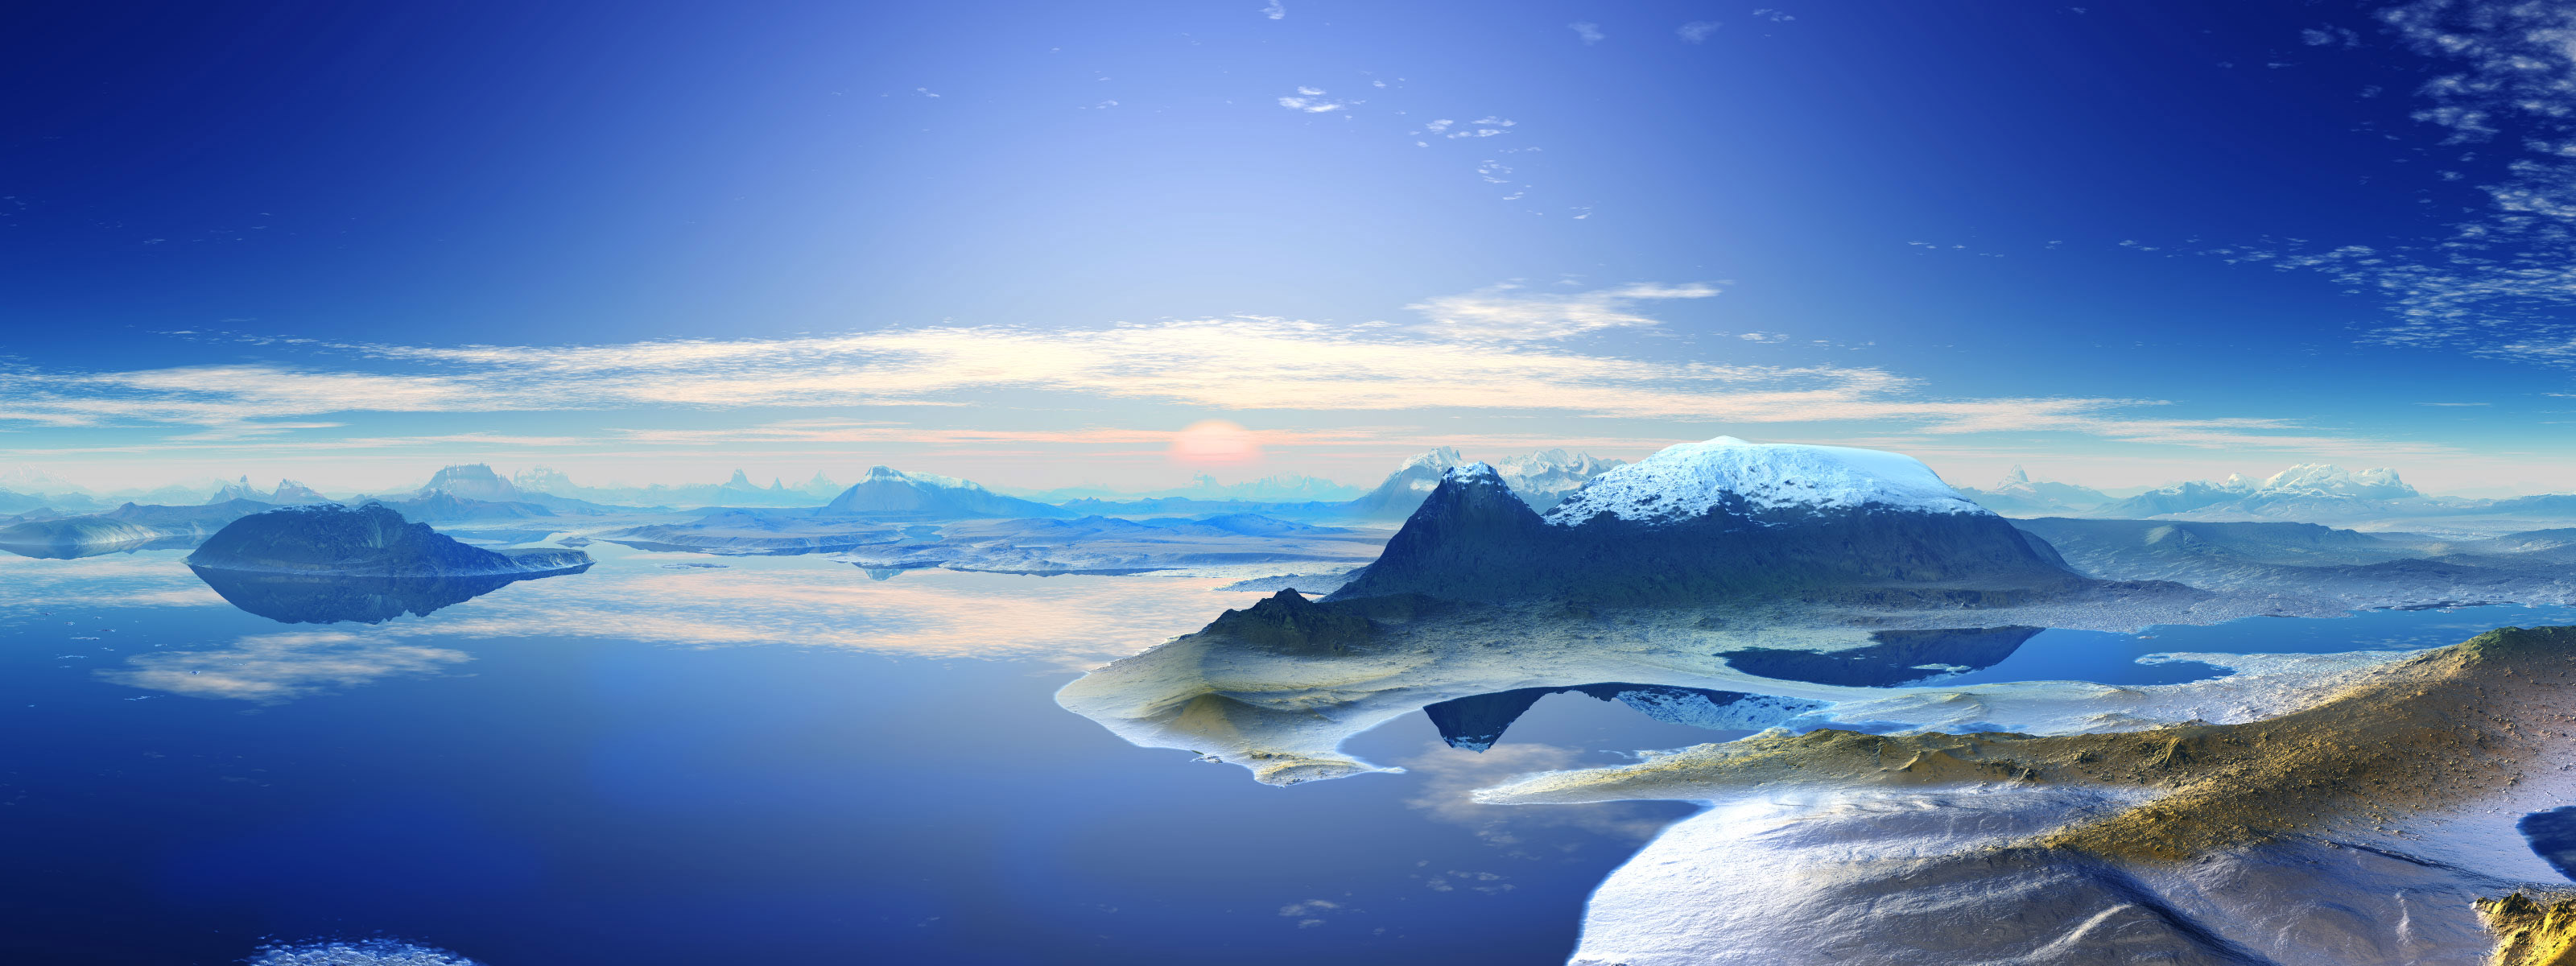 3D Panoramic Landscape Wallpapers HD Wallpapers 3200x1200